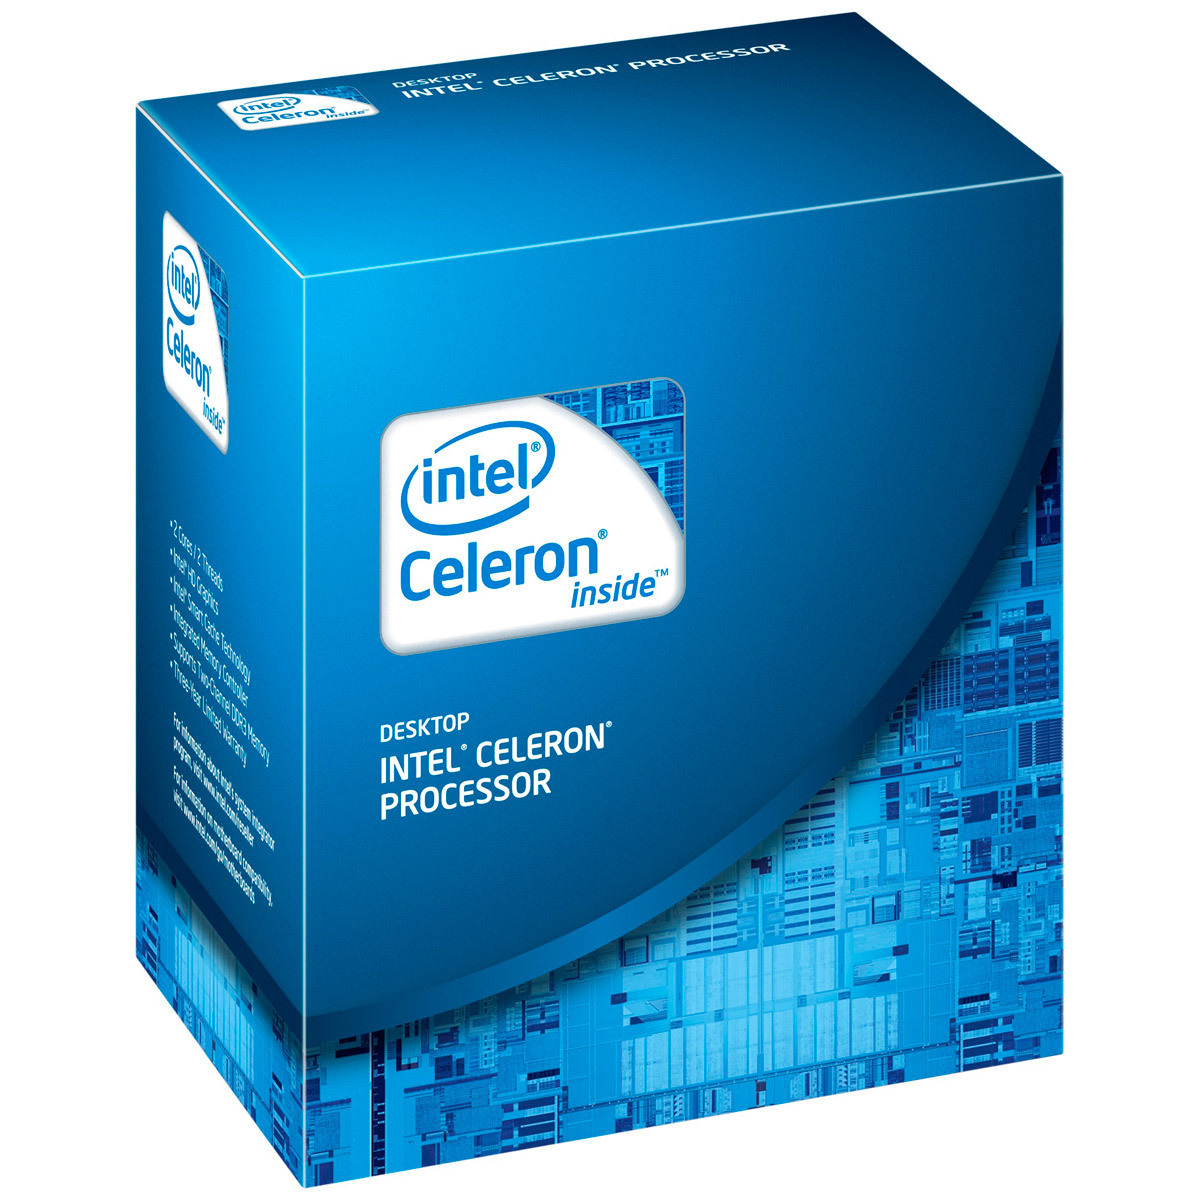 Boxed Intel Celeron Processor G530 (2M Cache, 2.4 GHz, 65W) socket LGA1155 (Sandy Bridge)